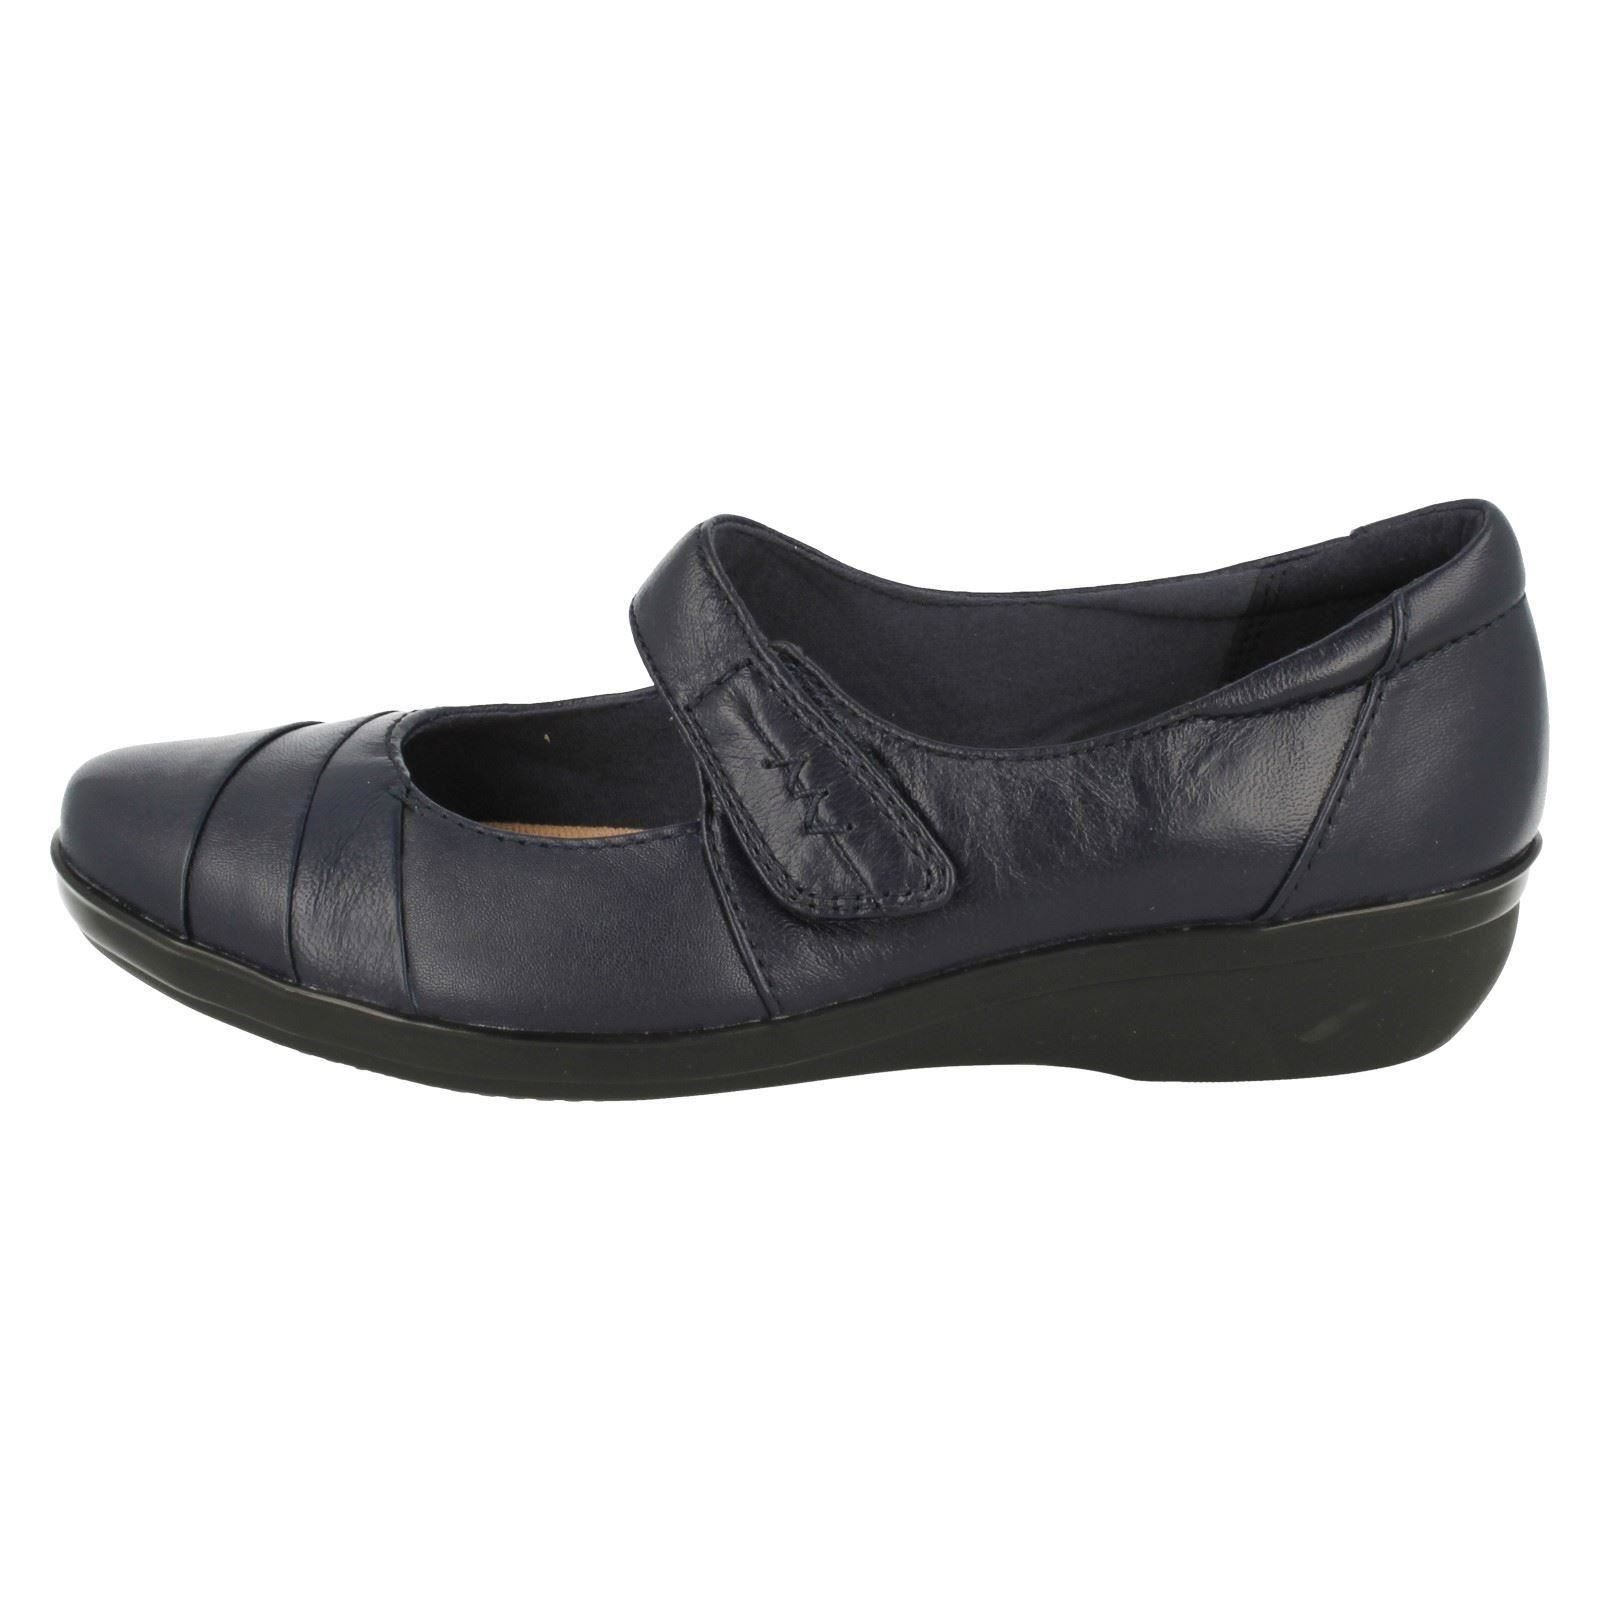 Ladies Clarks Everlay Kennon Cushion Soft Smart Shoes